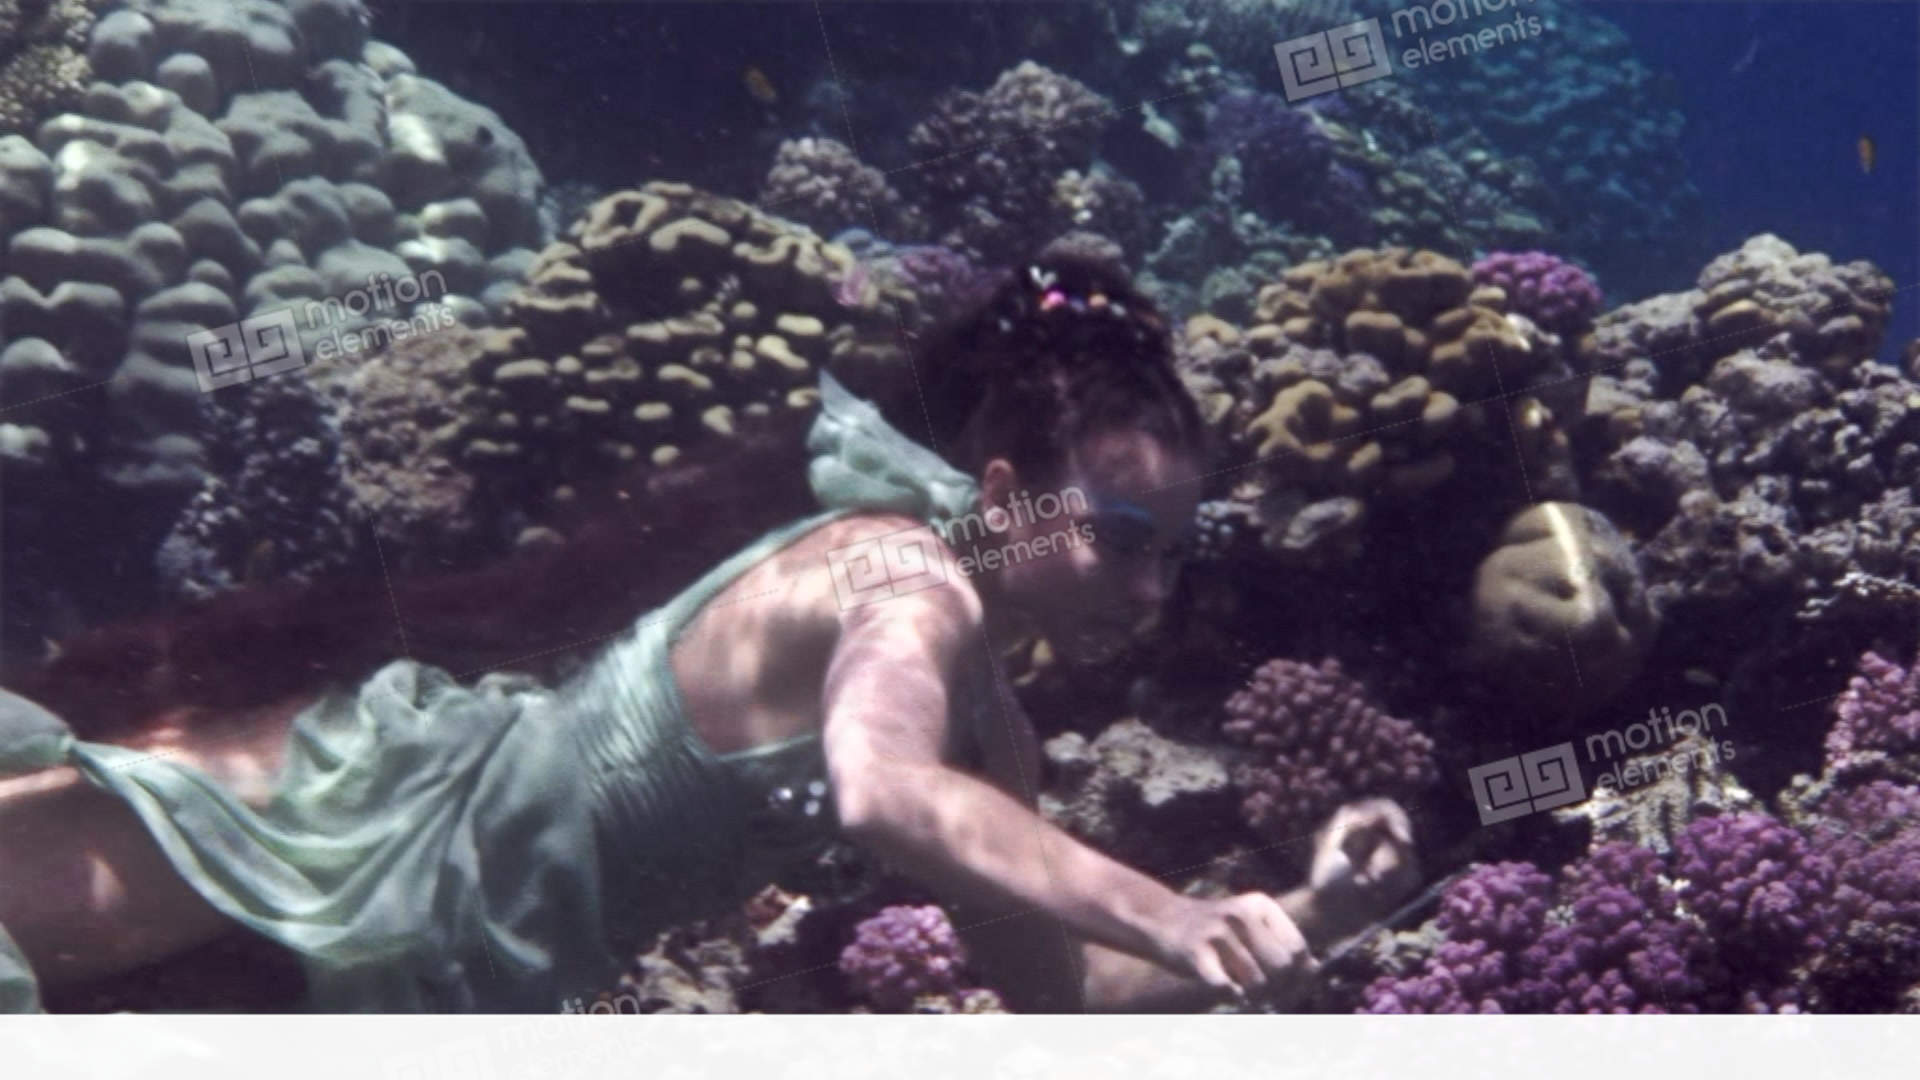 Underwater model free diver poses for camera on background of corals